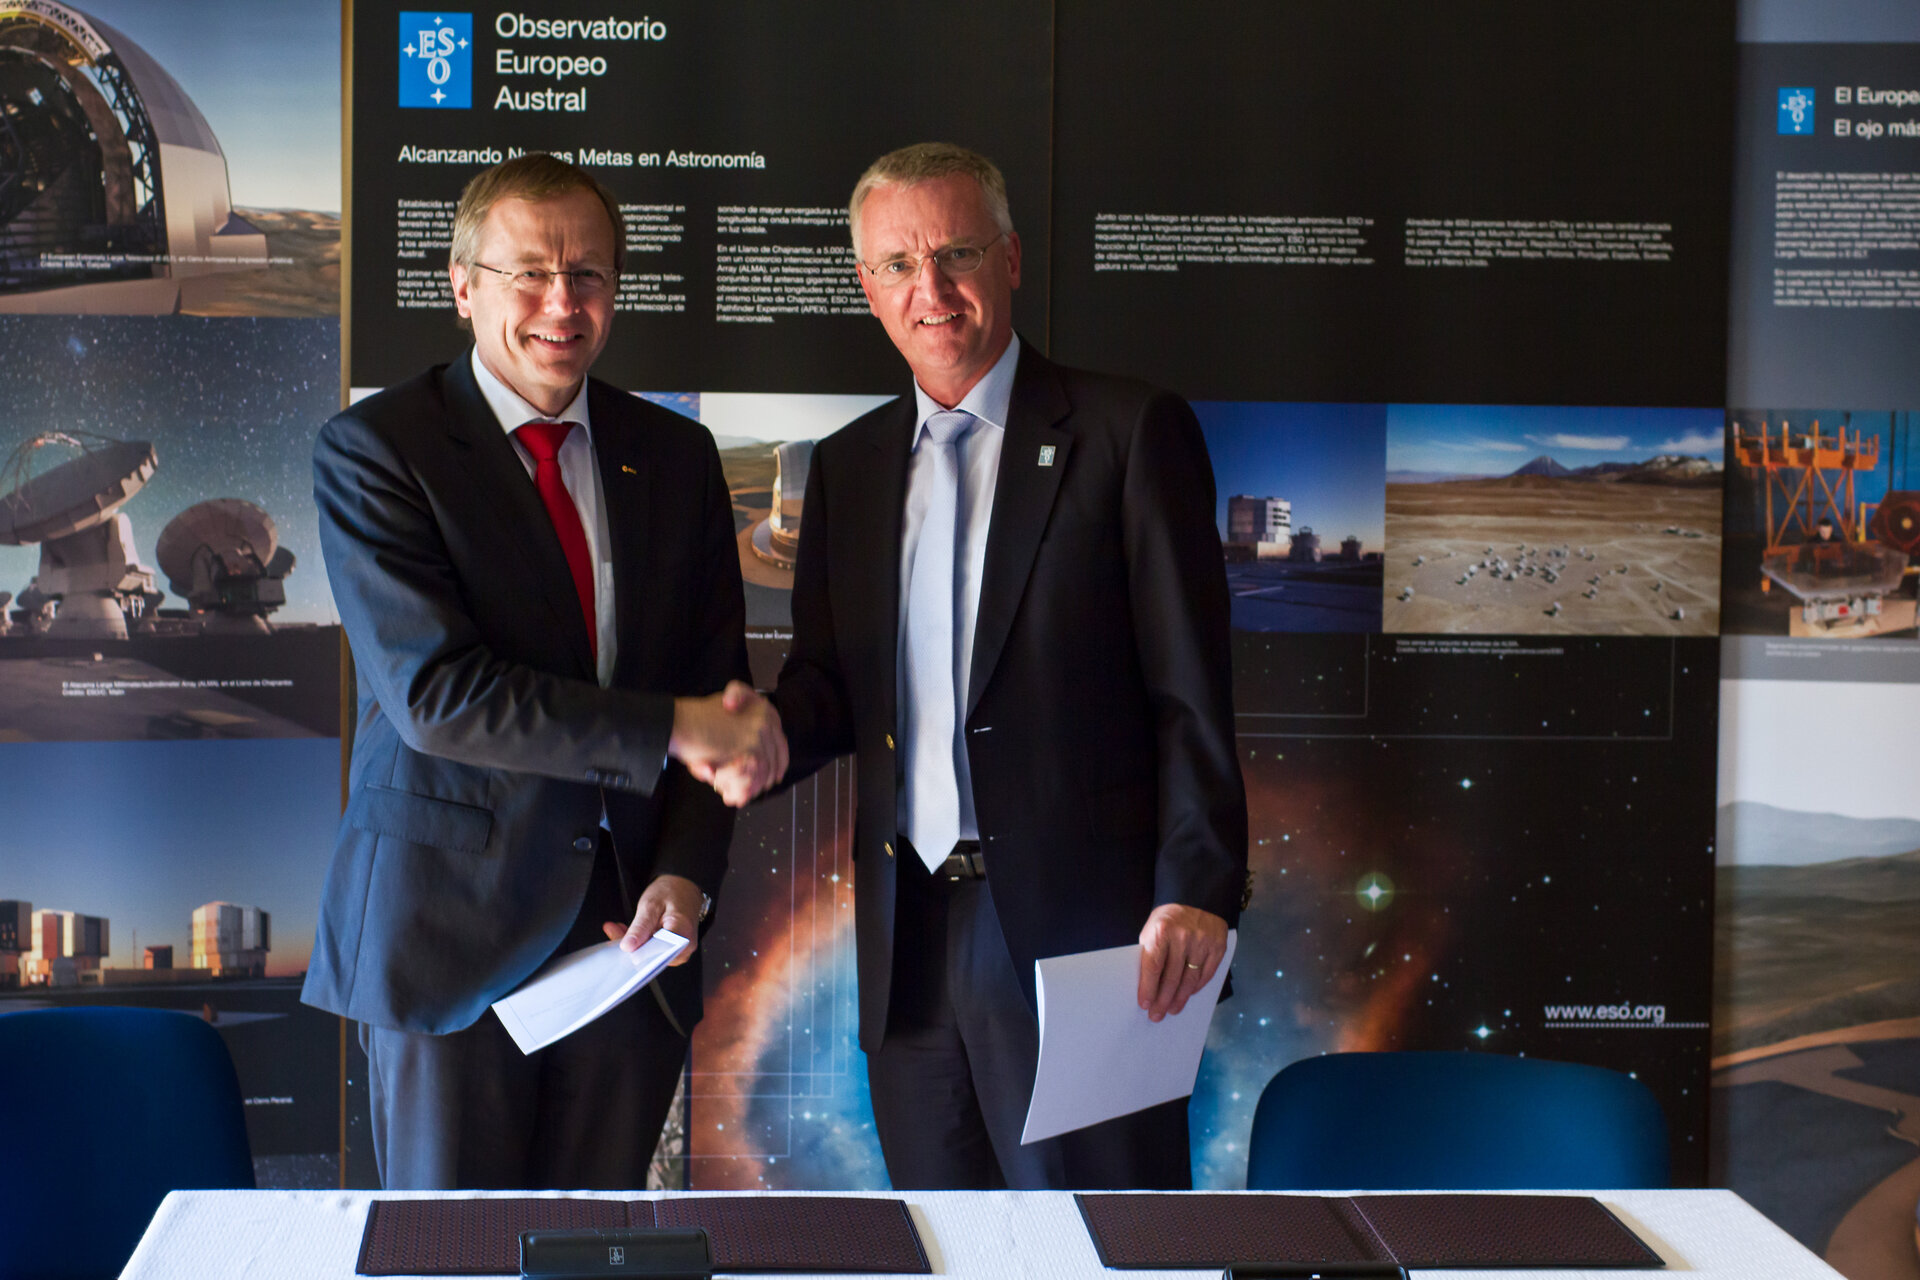 A cooperation agreement was signed at ESO's offices in Santiago, Chile